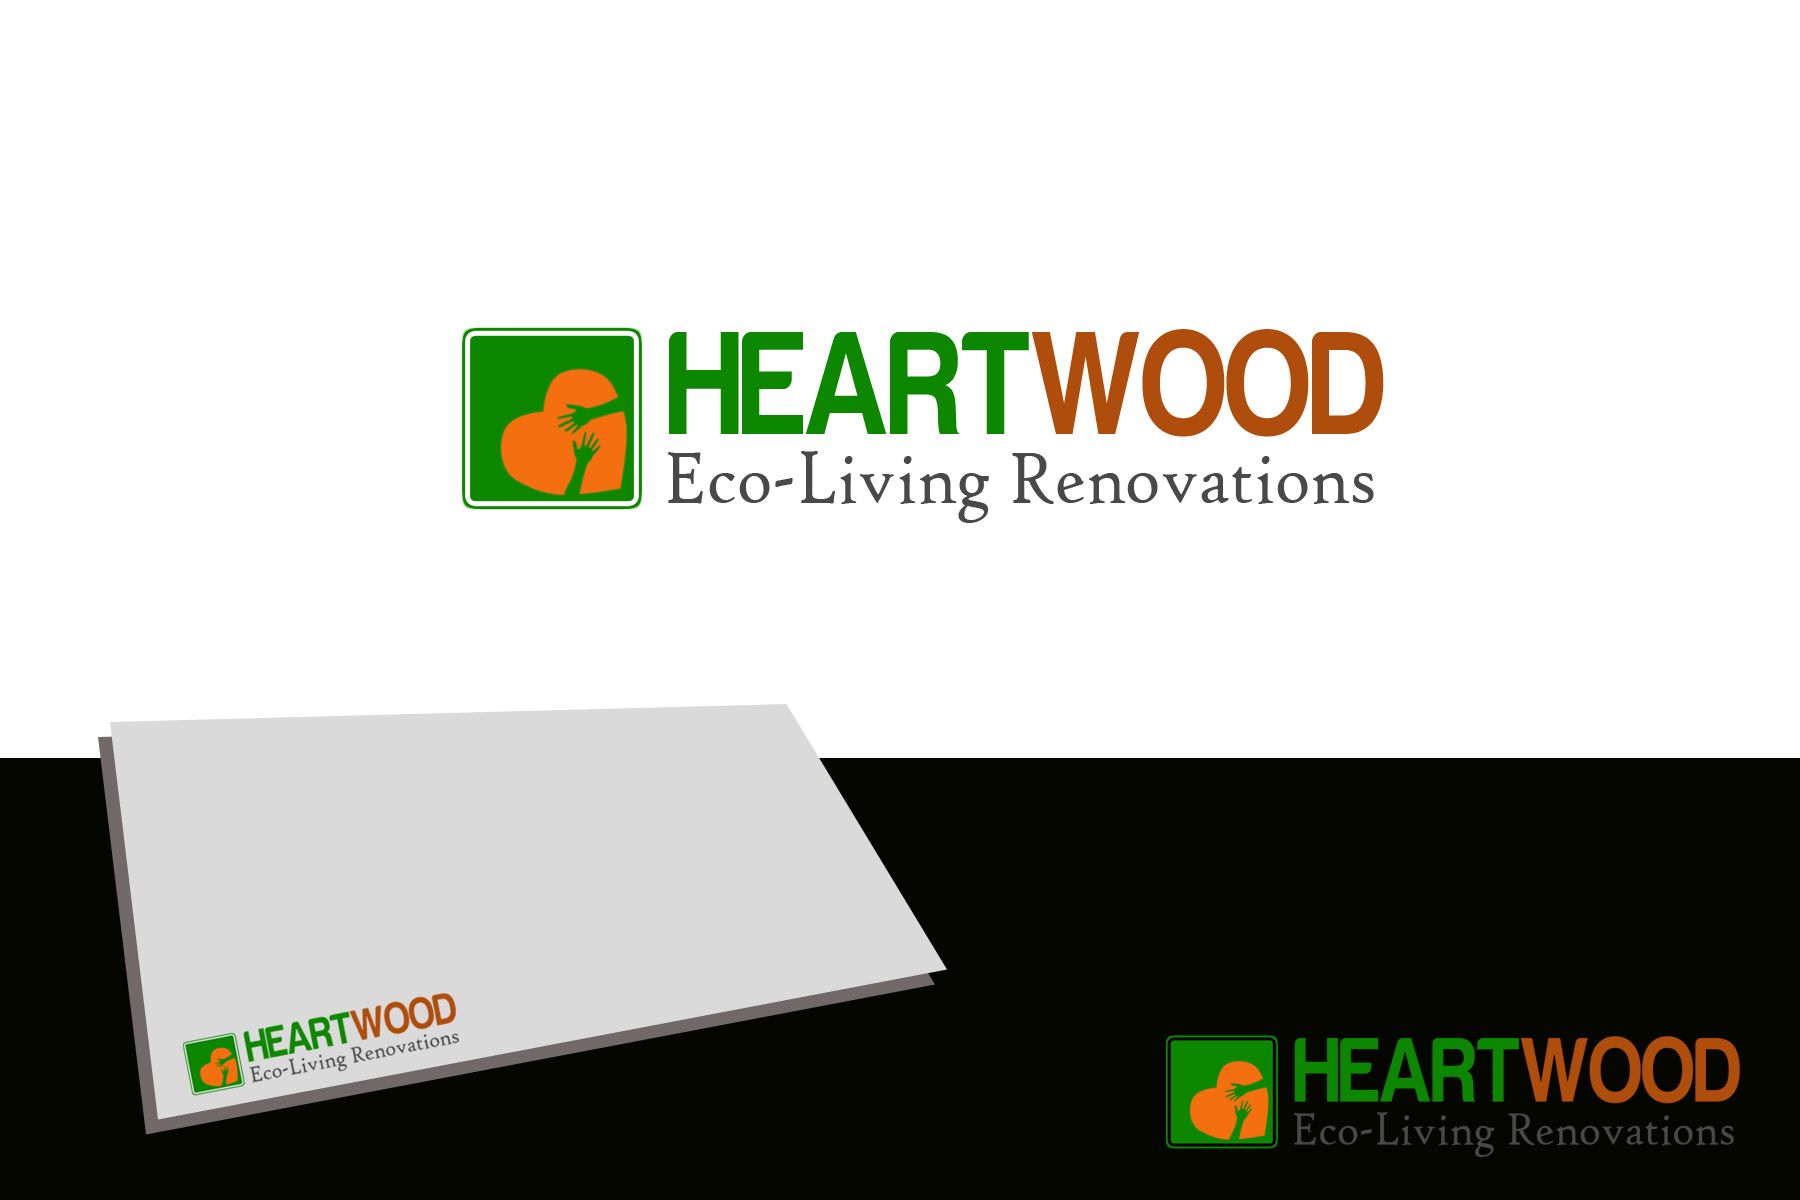 Logo Design by Golden_Hand - Entry No. 47 in the Logo Design Contest New Logo Design for Heartwood Eco-Living Renovations.